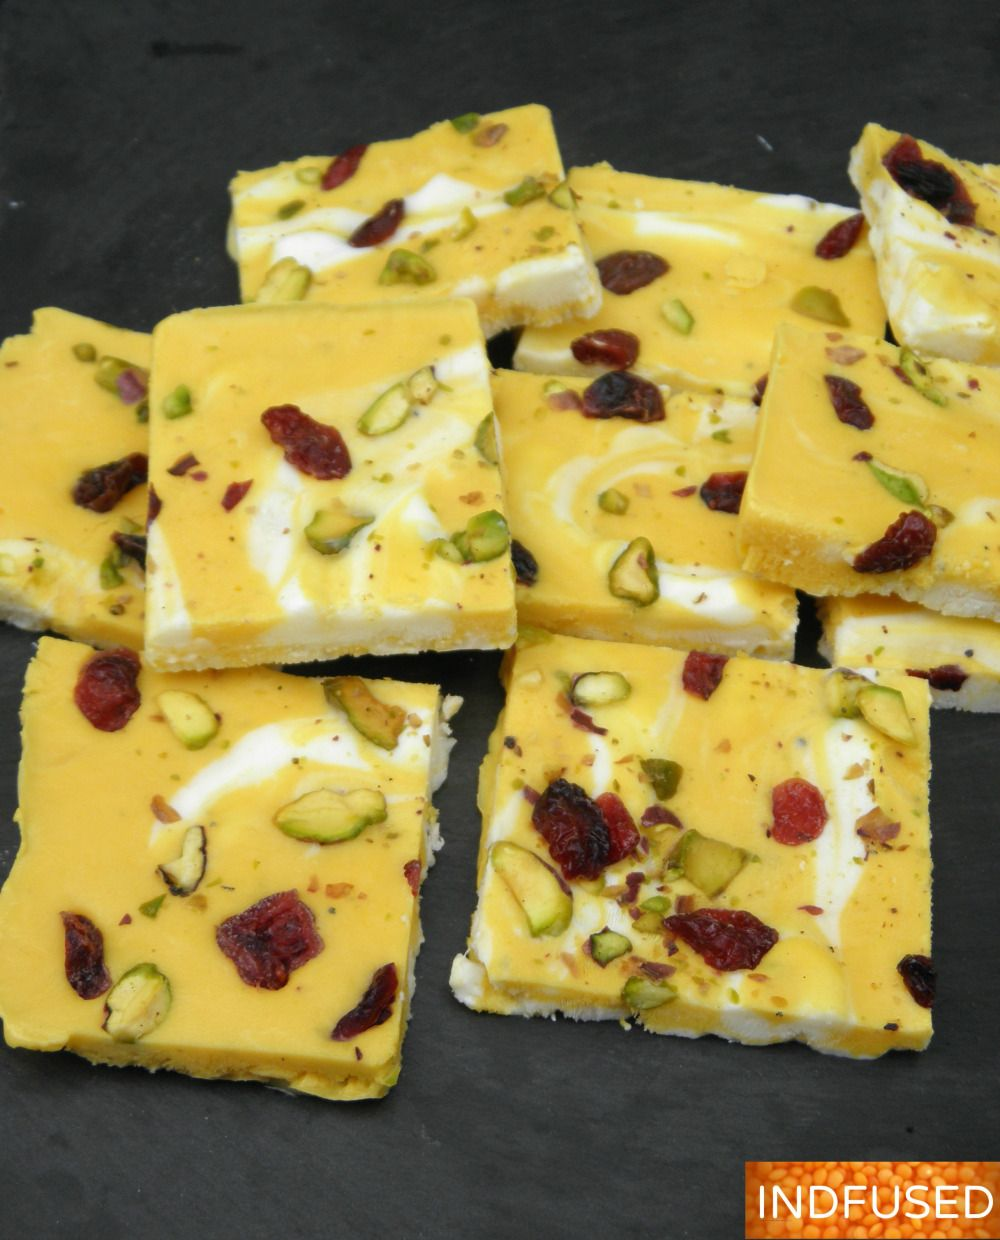 Quick and easy recipe for the perfect summer dessert! A nectarous dessert made with Greek yogurt, mango, pistachios and craisins and scented with cardamom.